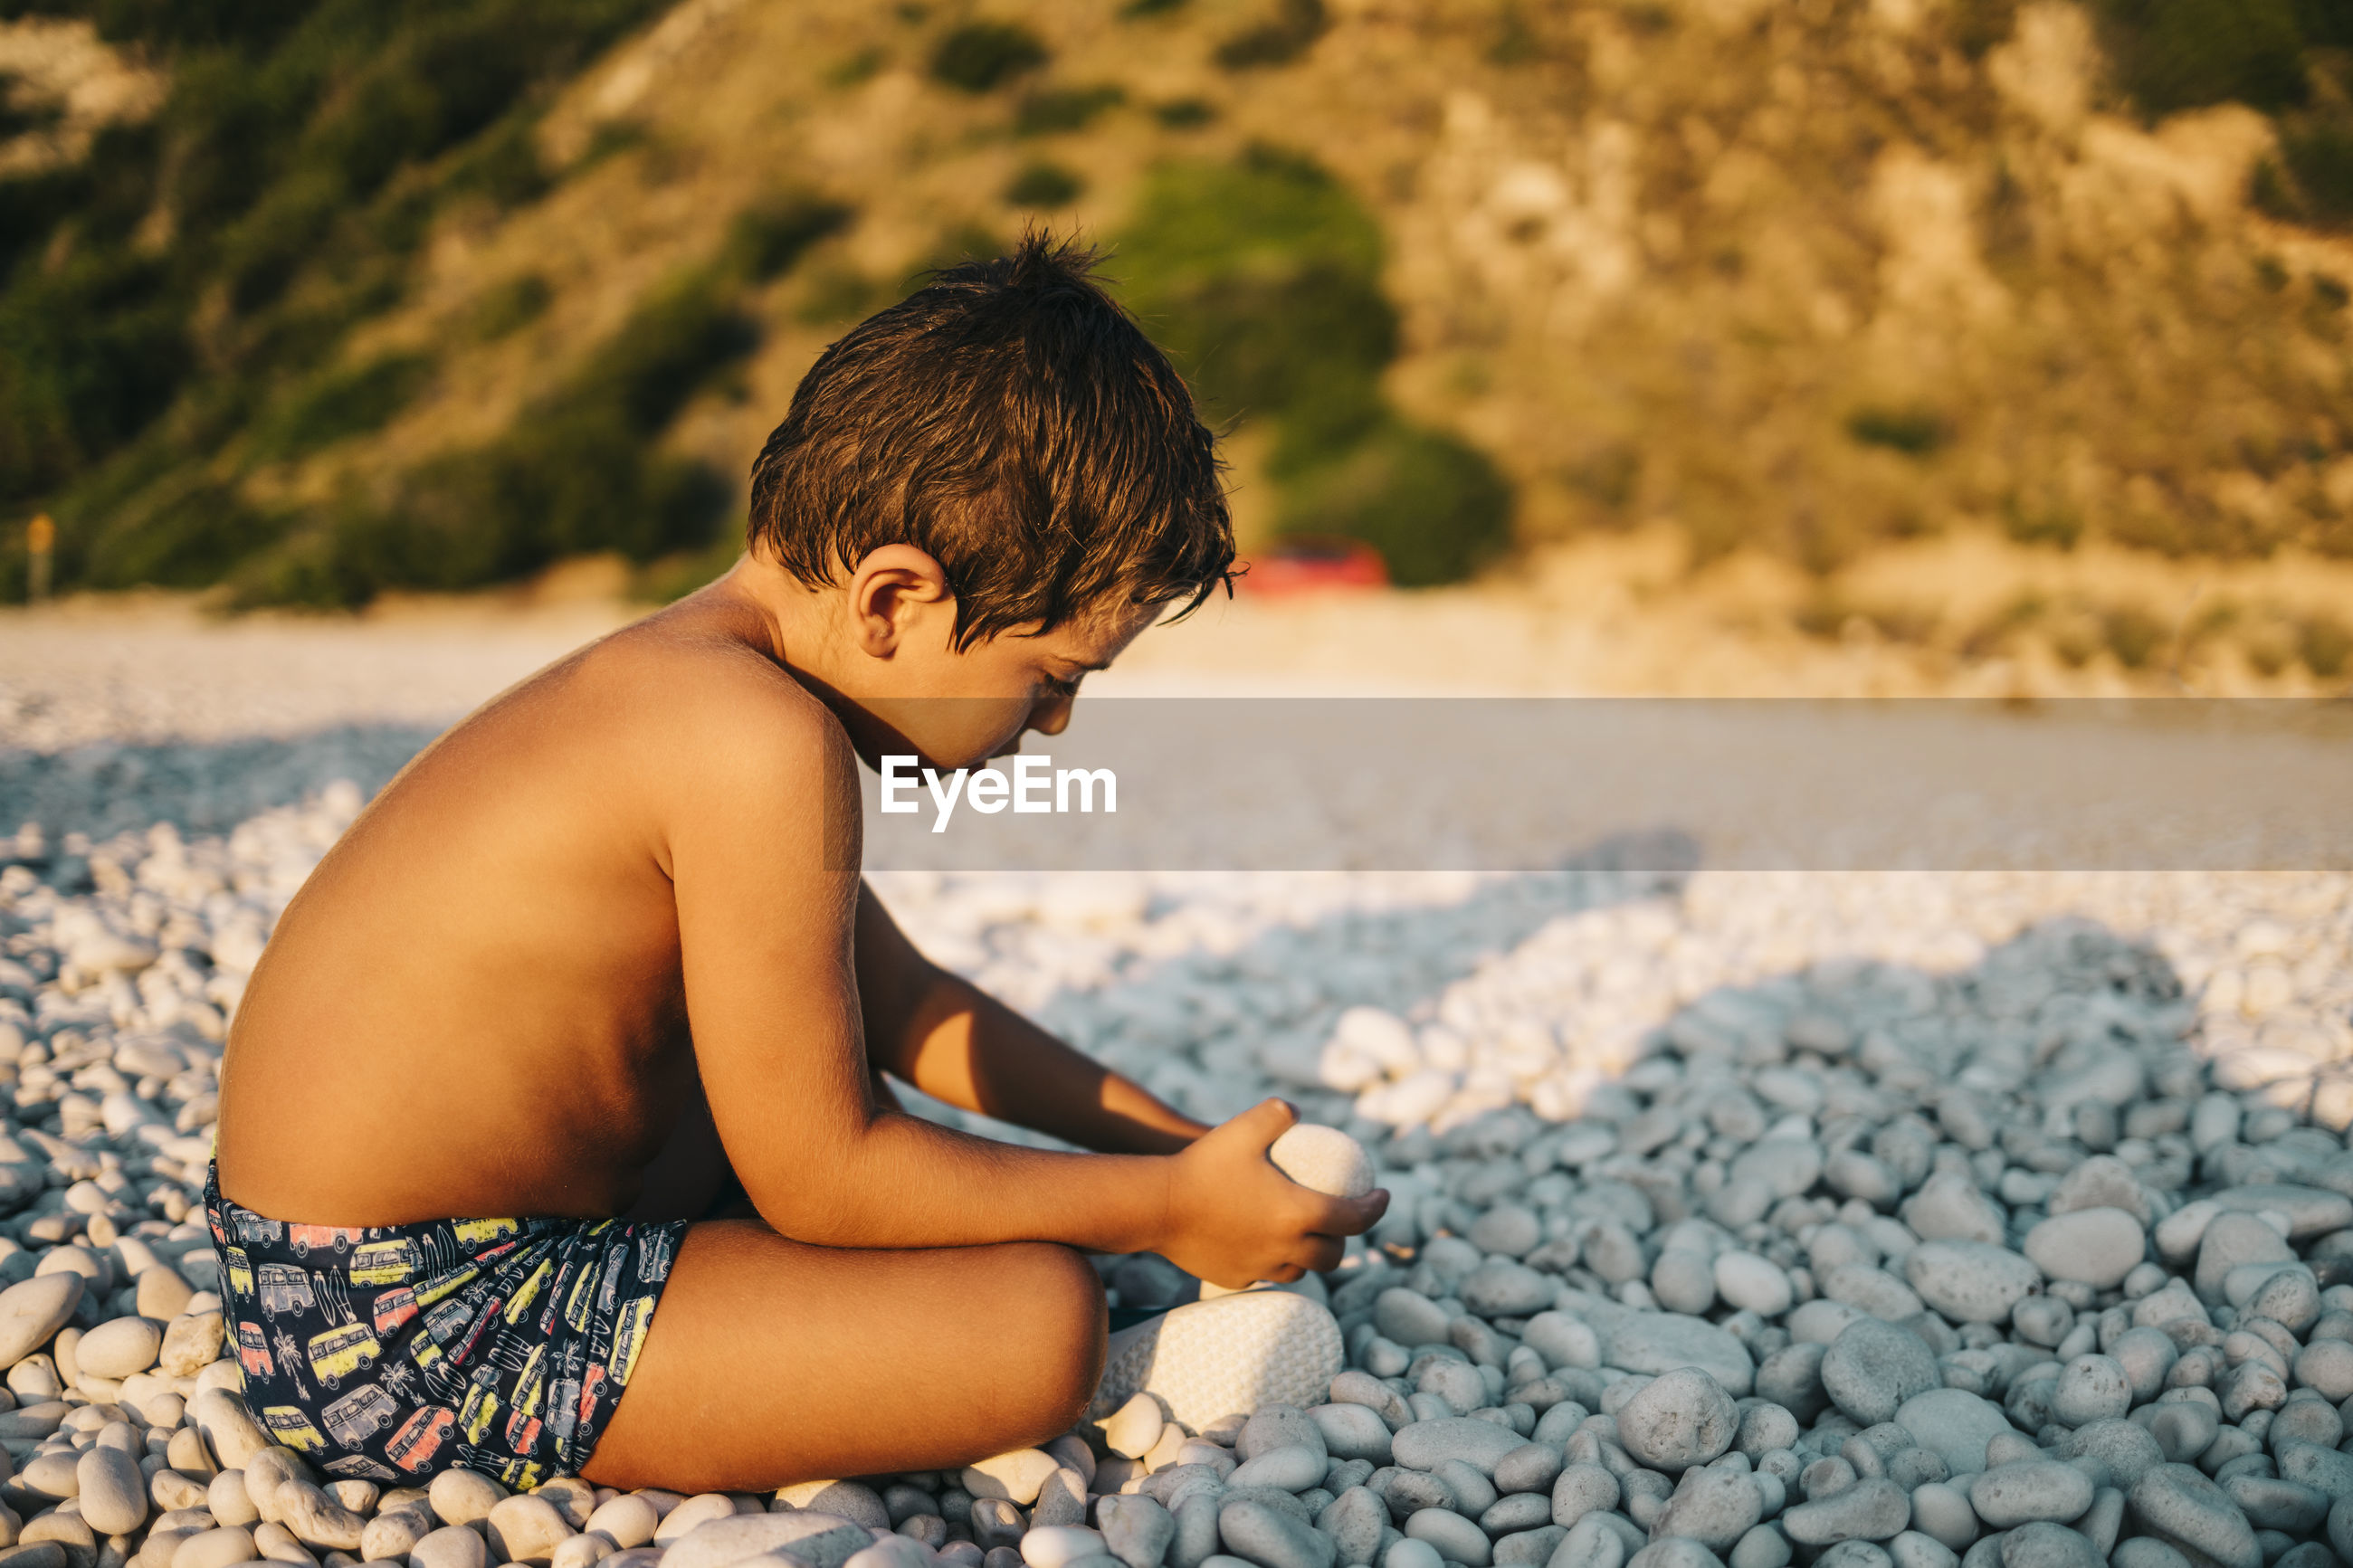 Side view of shirtless boy sitting on pebble